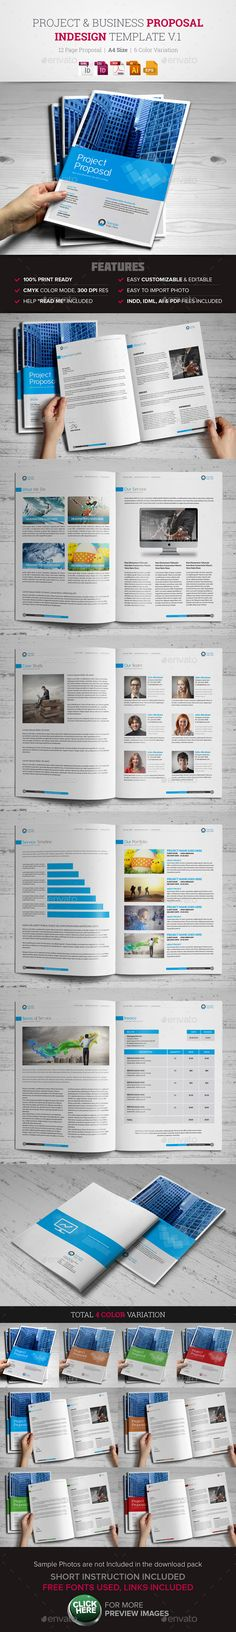 Branding Proposal Template Best of the best free and premium - business proposal software free download